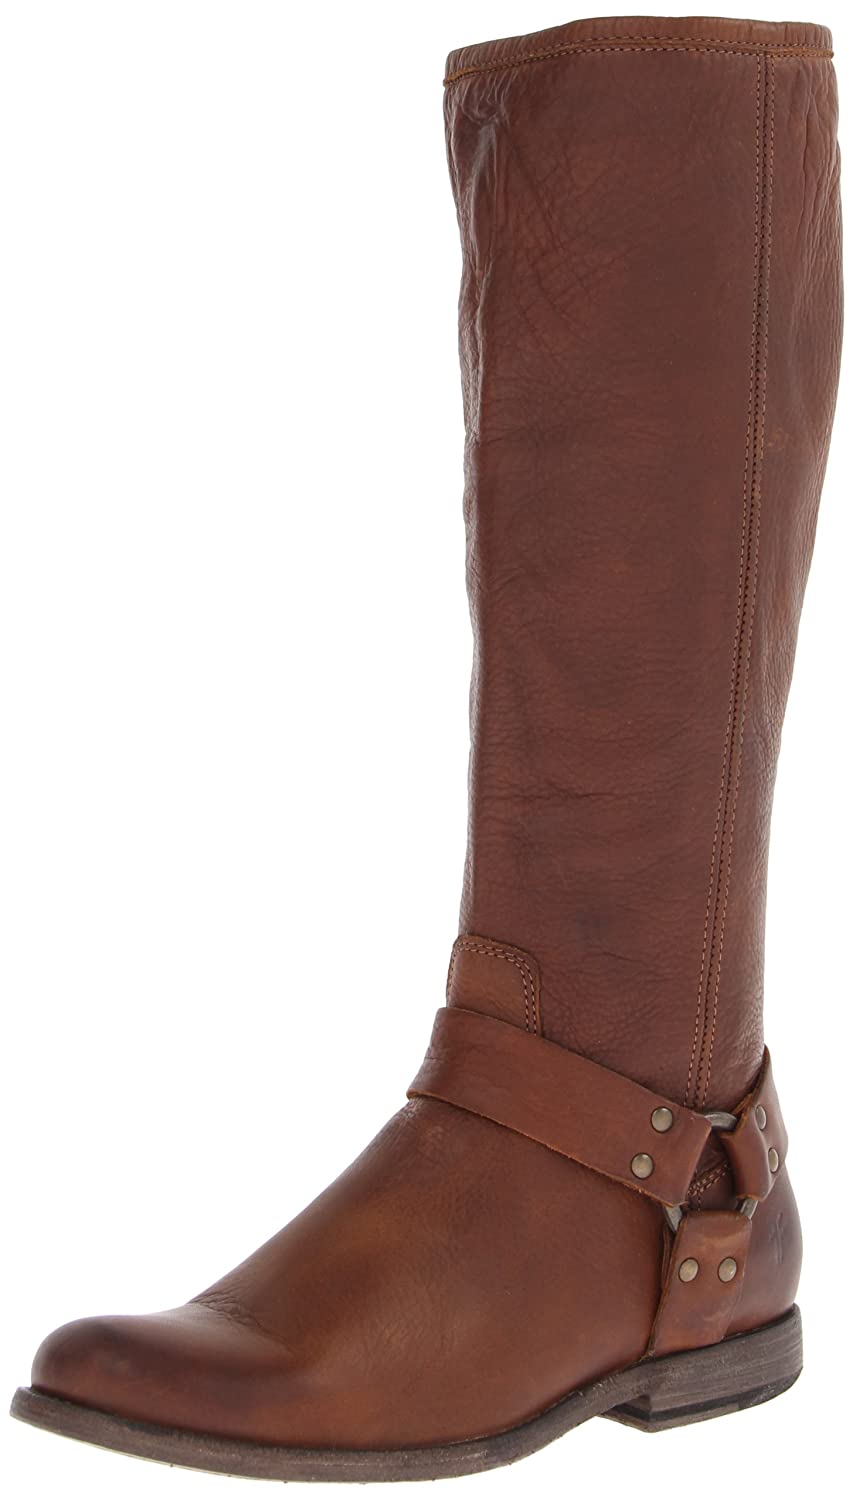 FRYE Women's Phillip Harness Tall Boot B004W25WWS 8 B(M) US|Cognac Soft Vintage Leather-76850